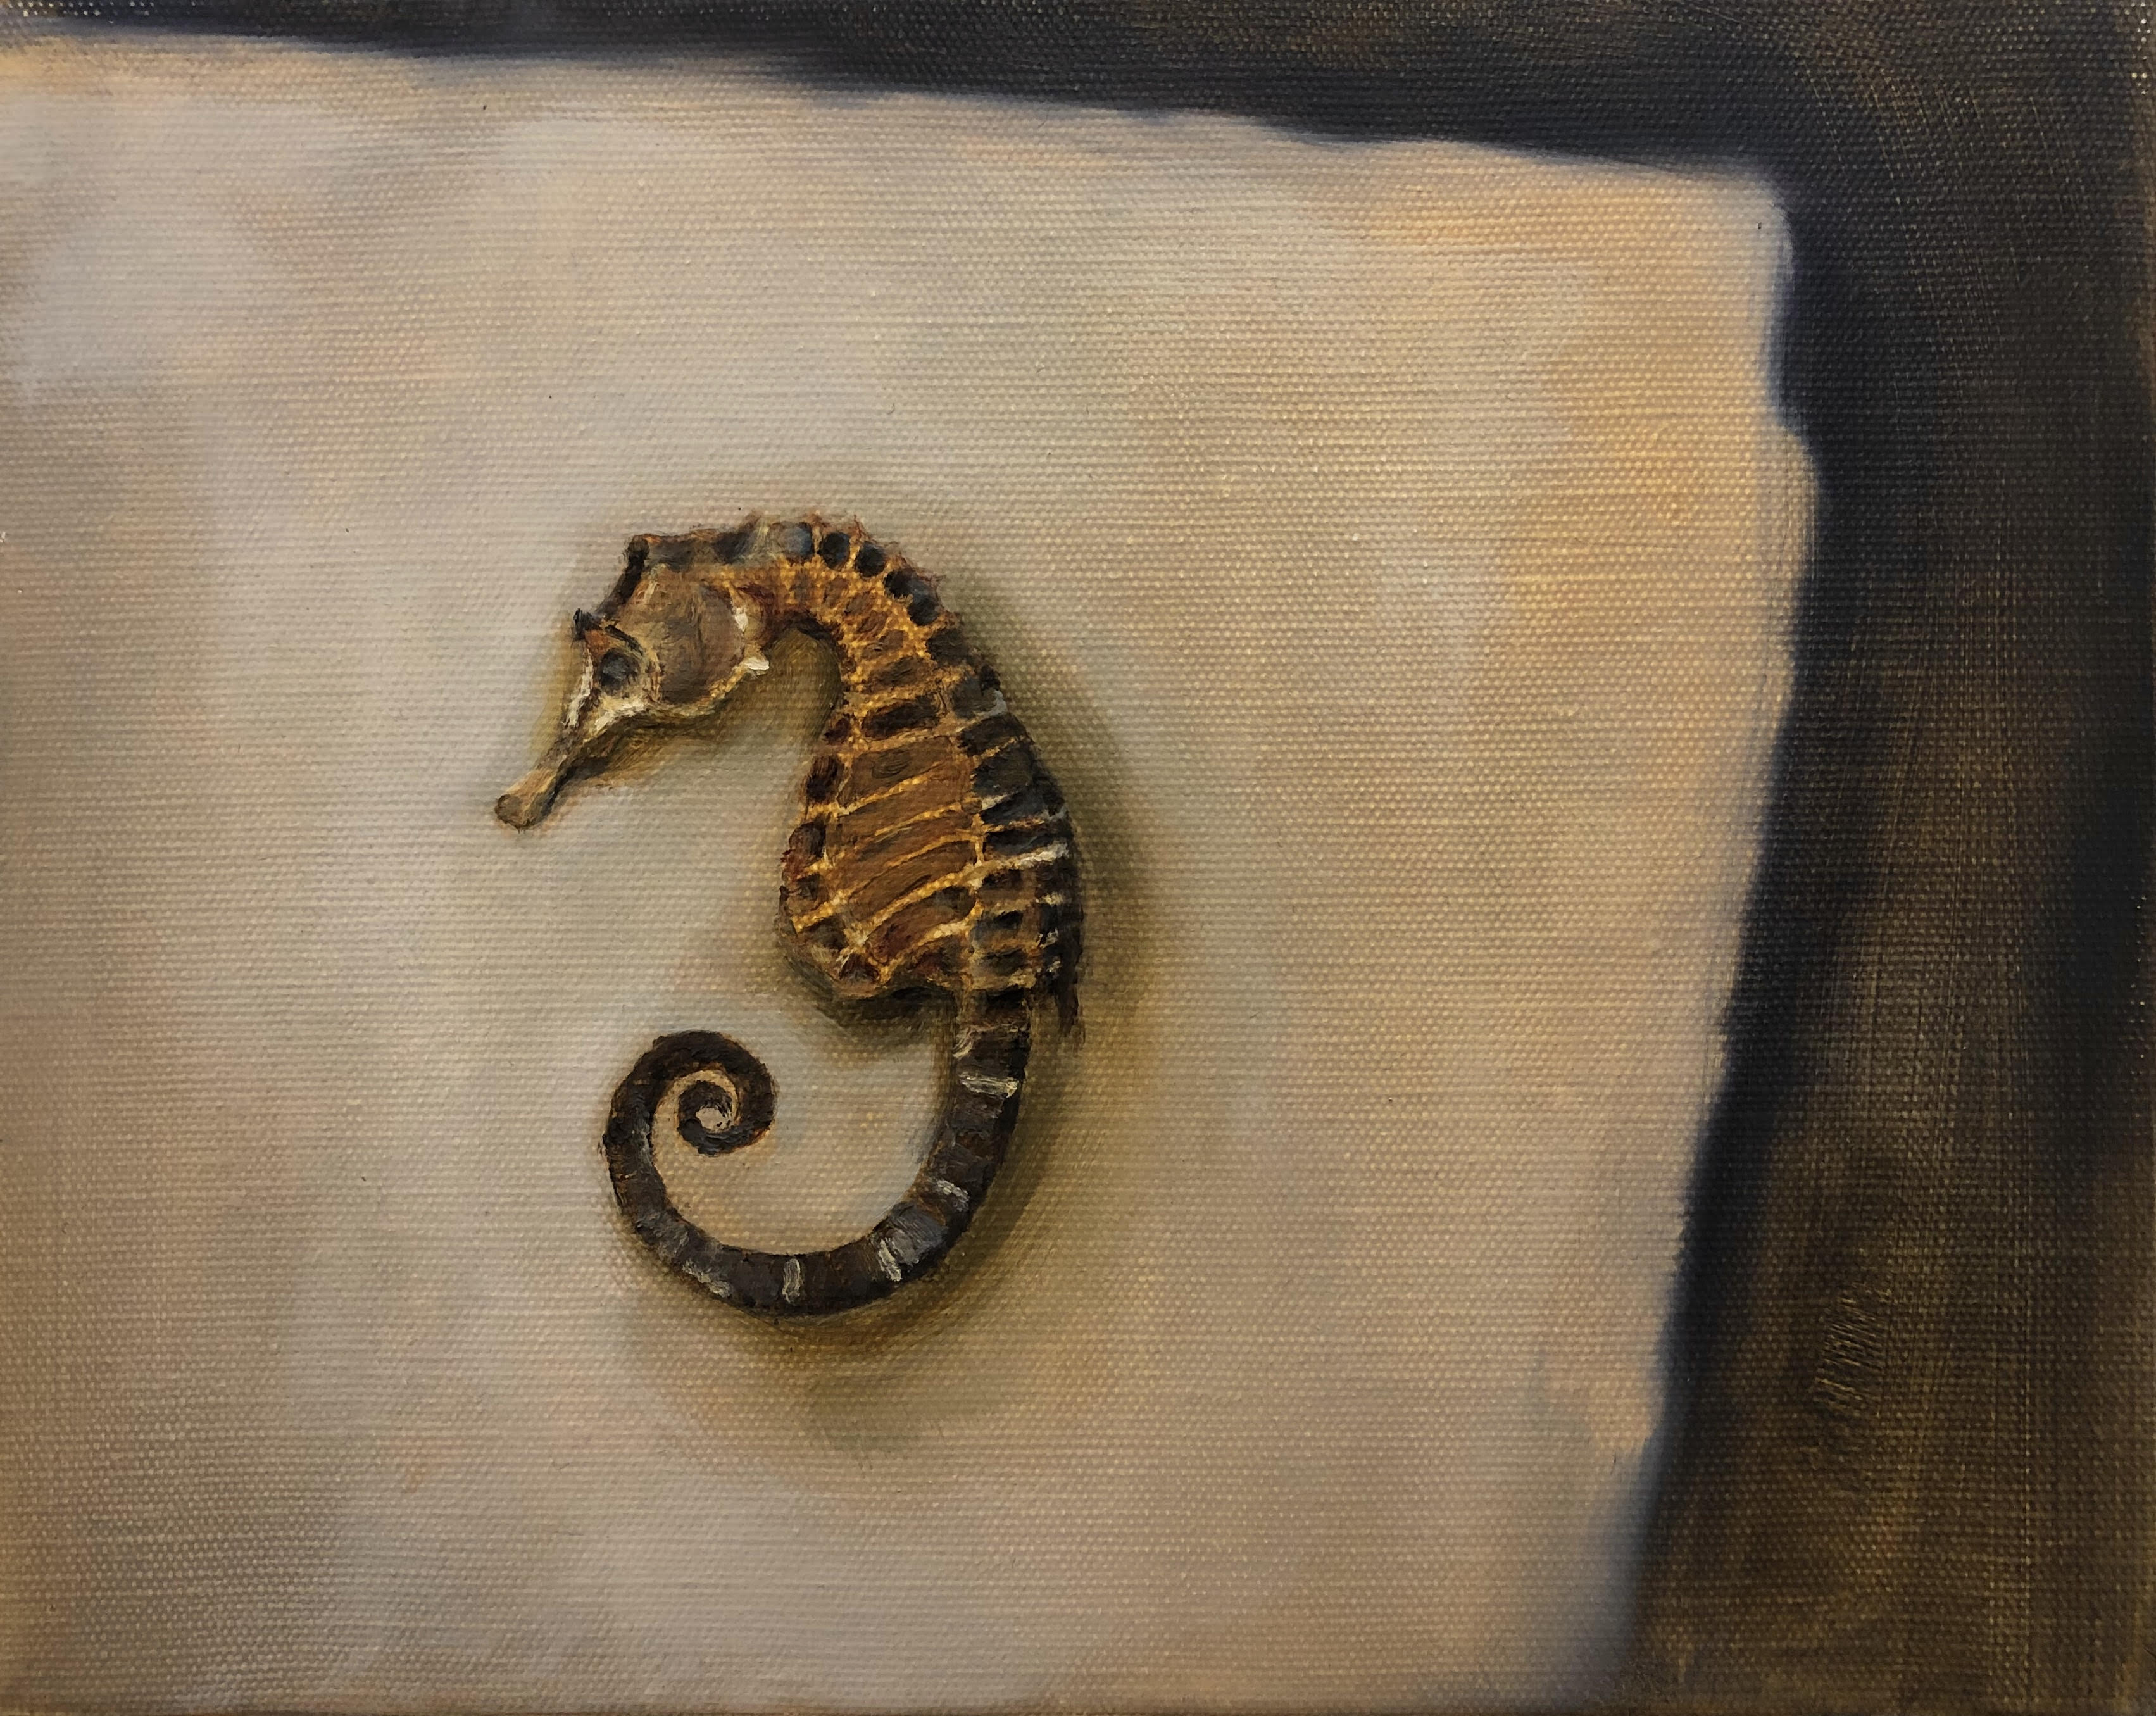 Seahorse by Beatrice O'Connell